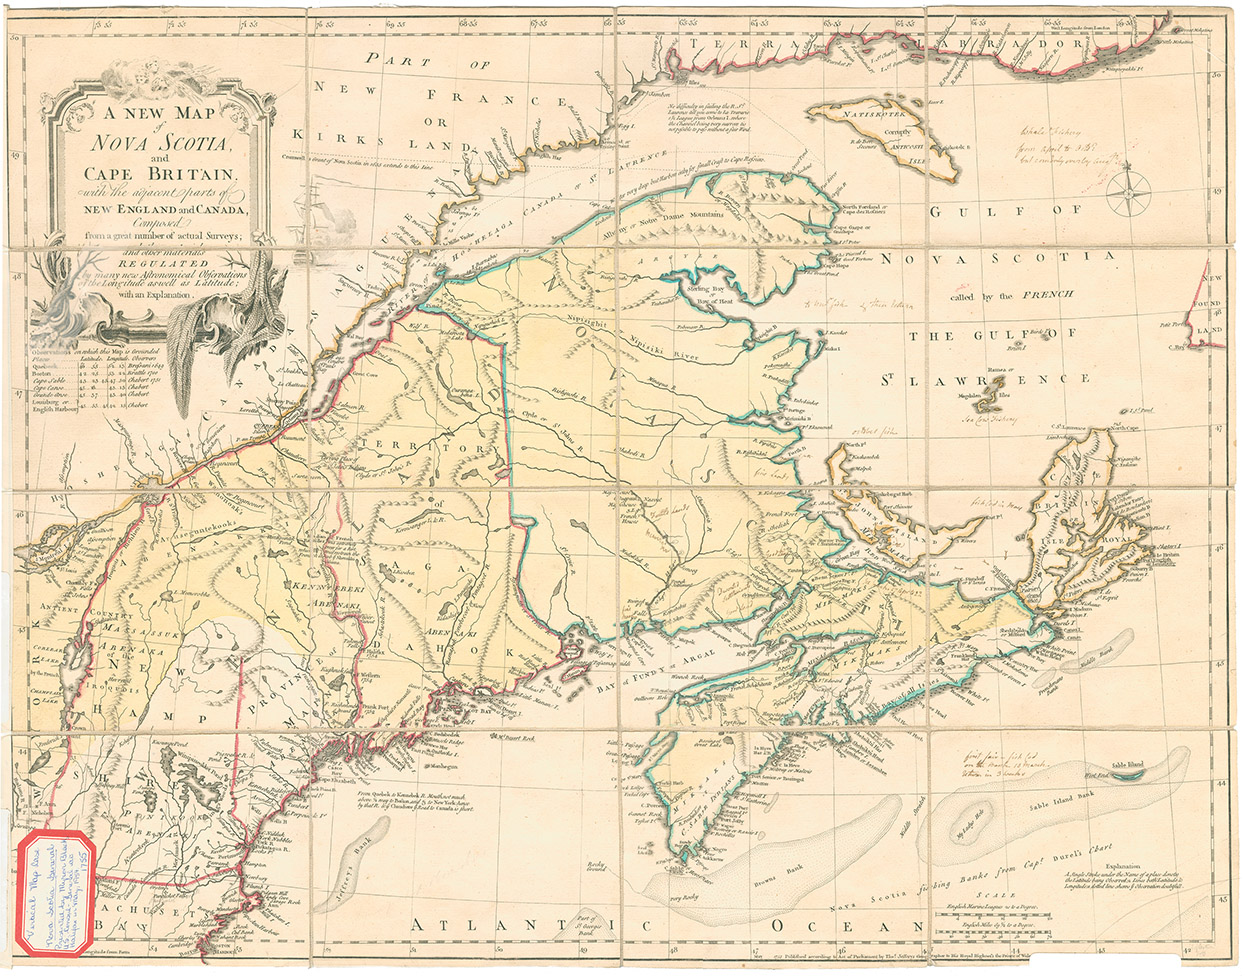 <i>A New Map of Nova Scotia and Cape Britain and the adjacent parts of New England & Canada, 1755</i>